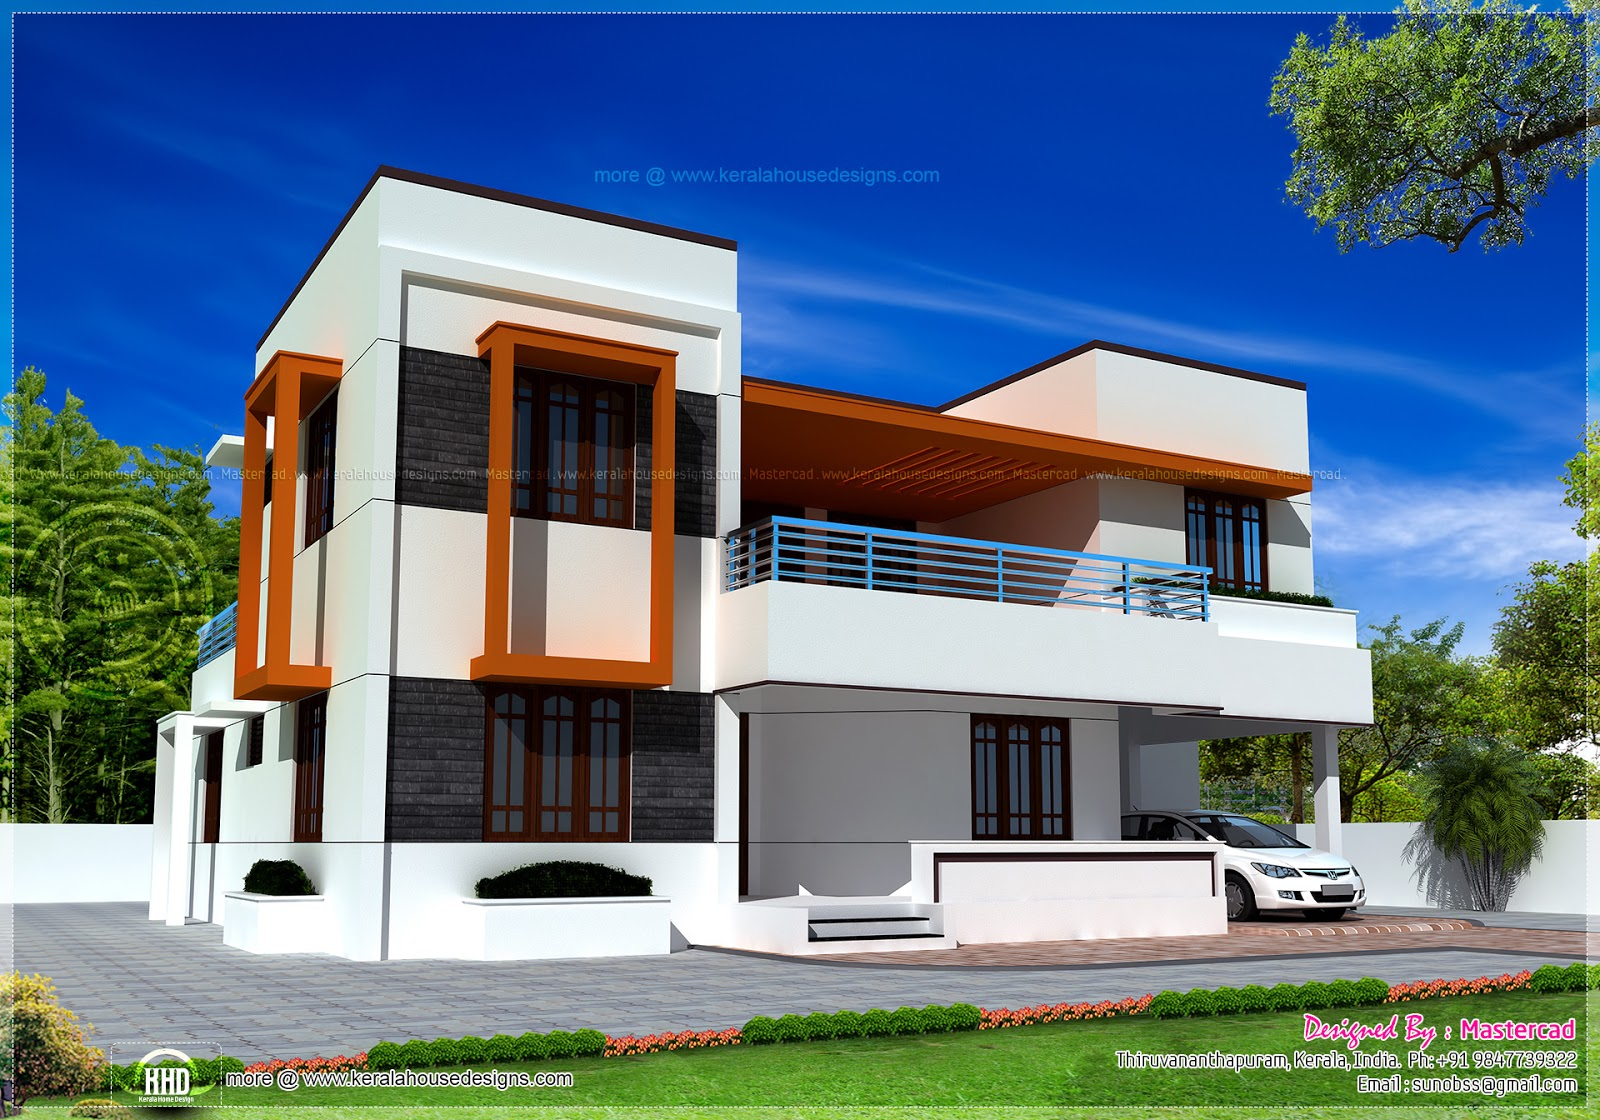 4 Bedroom Flat Roof House In 2548 Sq Ft Kerala Home Design And Floor Plans